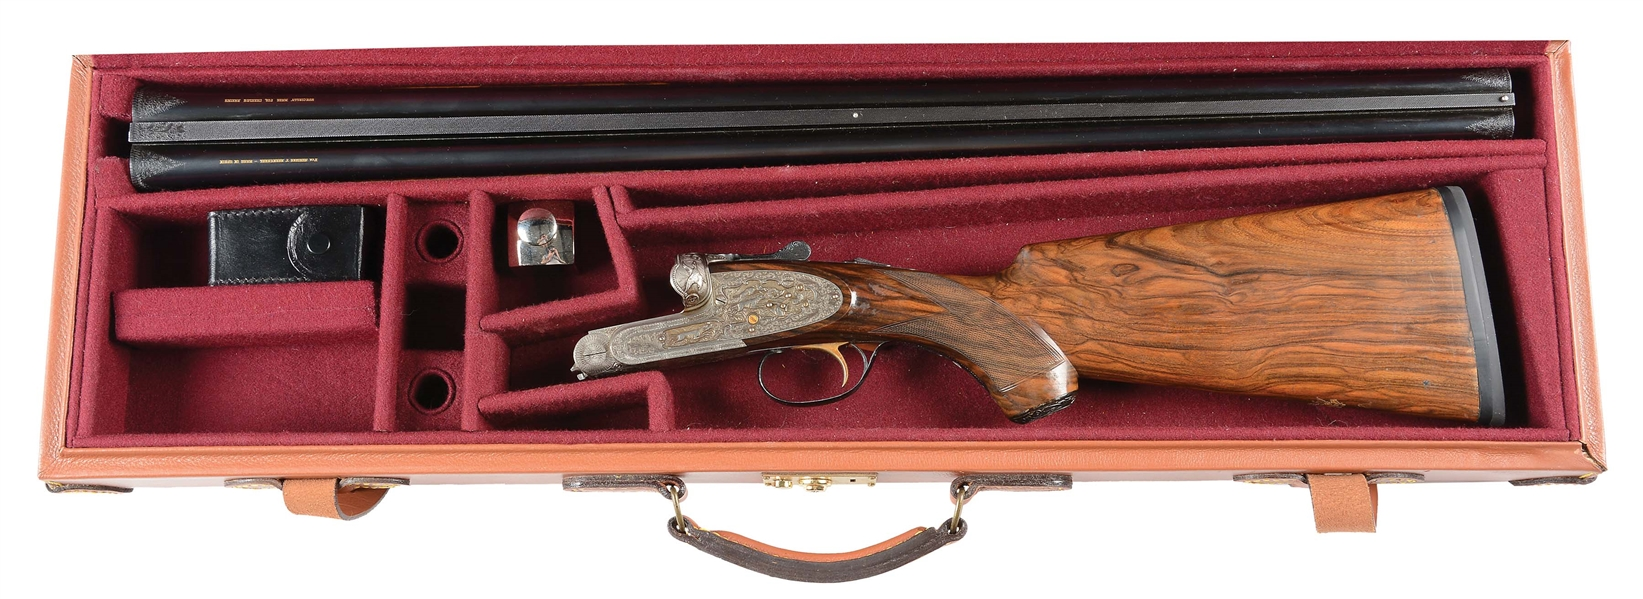 (C) ICONIC GUN WRITER COL. CHARLES ASKINS TEN GAUGE MAGNUM RELIEF GAME SCENE ENGRAVED PRESENTATION CUSTOM AYA SIDELOCK EJECTOR SINGLE TRIGGER SHOTGUN WITH CASE.